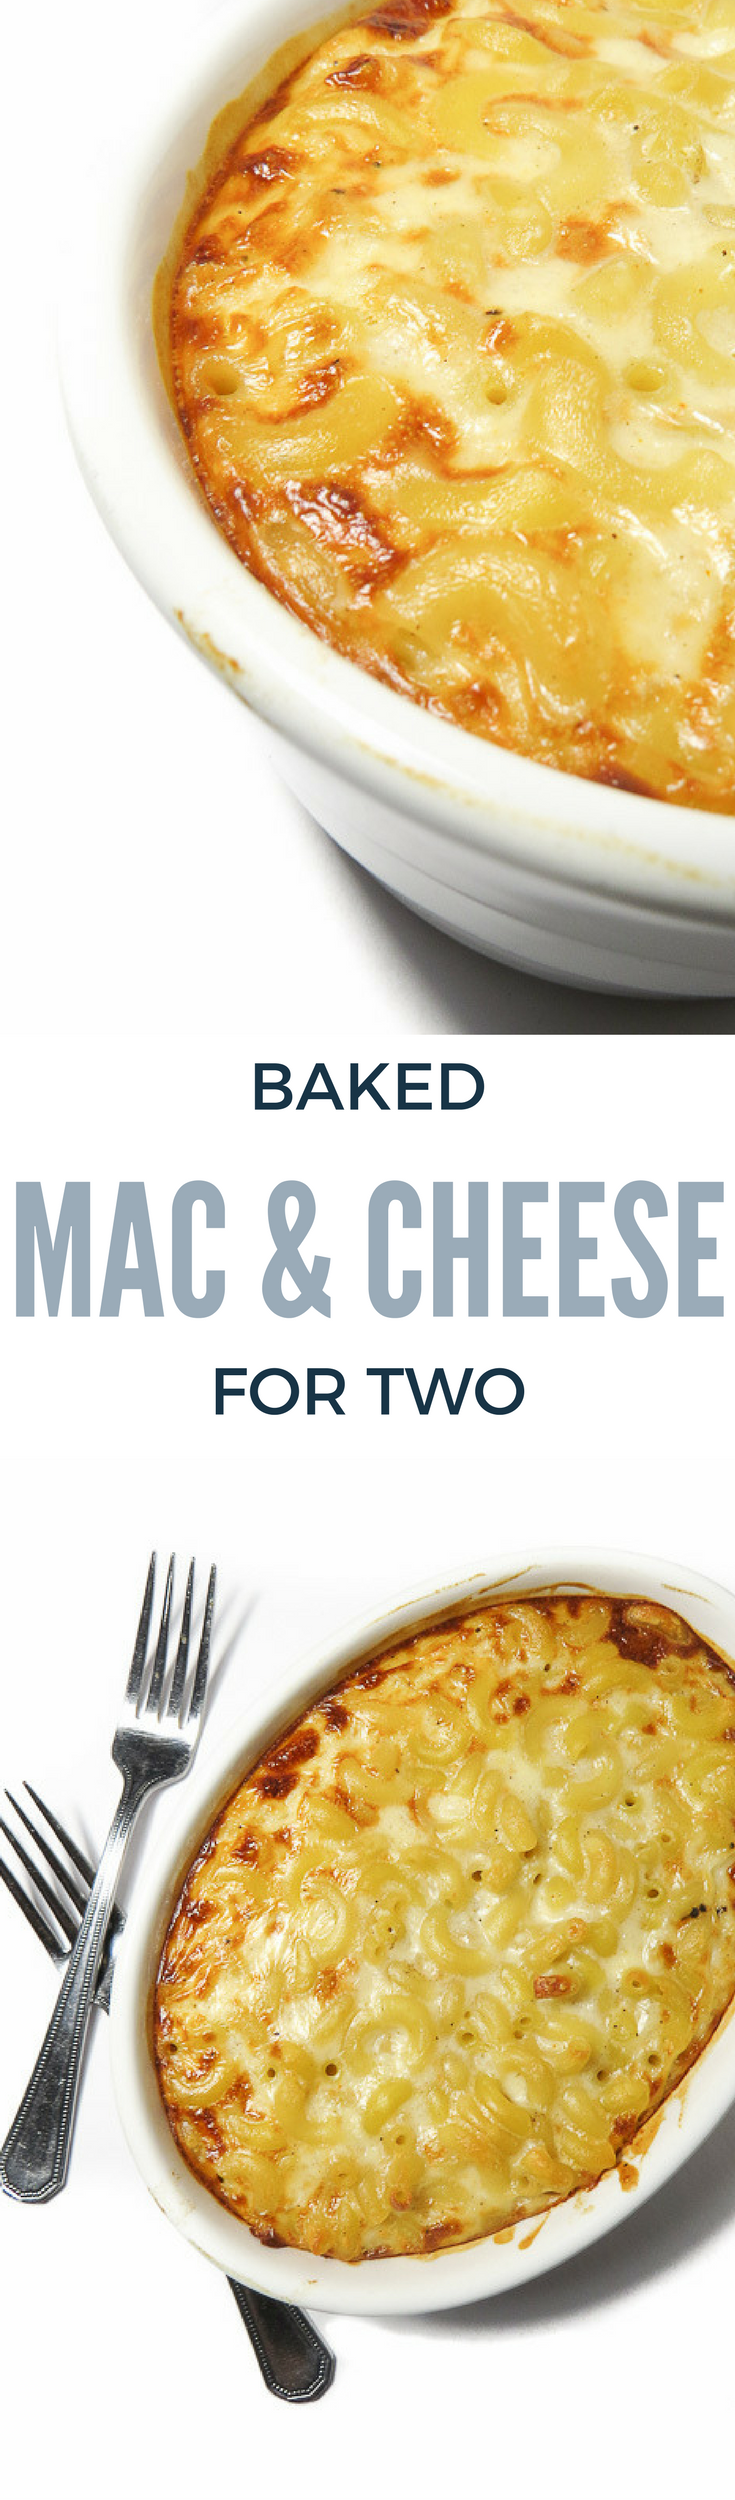 Baked Mac and Cheese for Two Pinterest Pin